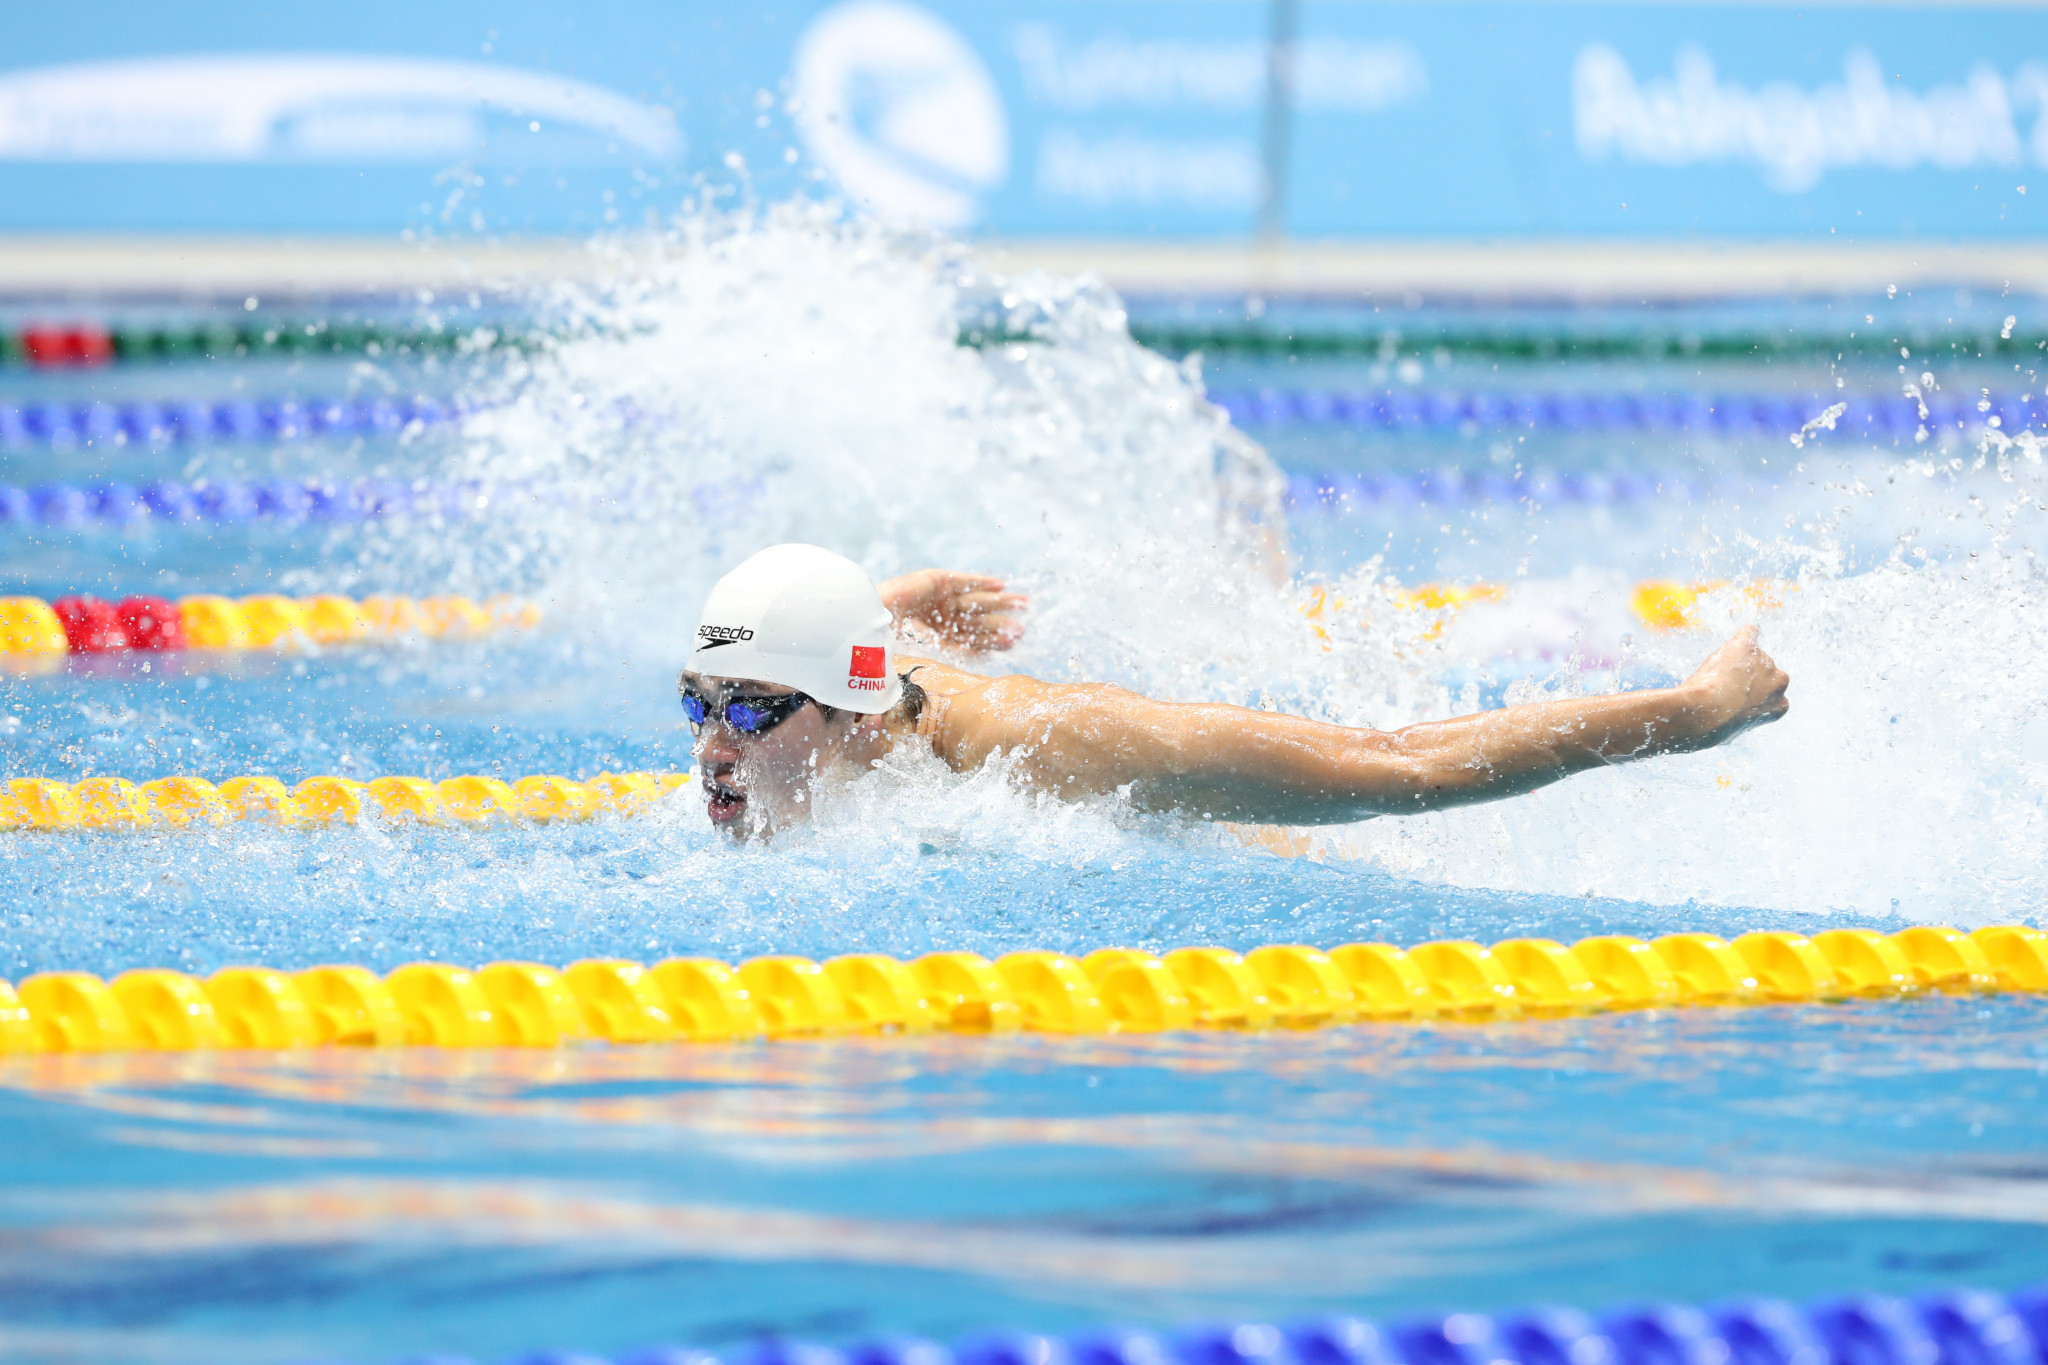 Wang twice breaks 100m breaststroke Games record on first day of Ashgabat 2017 short course swimming